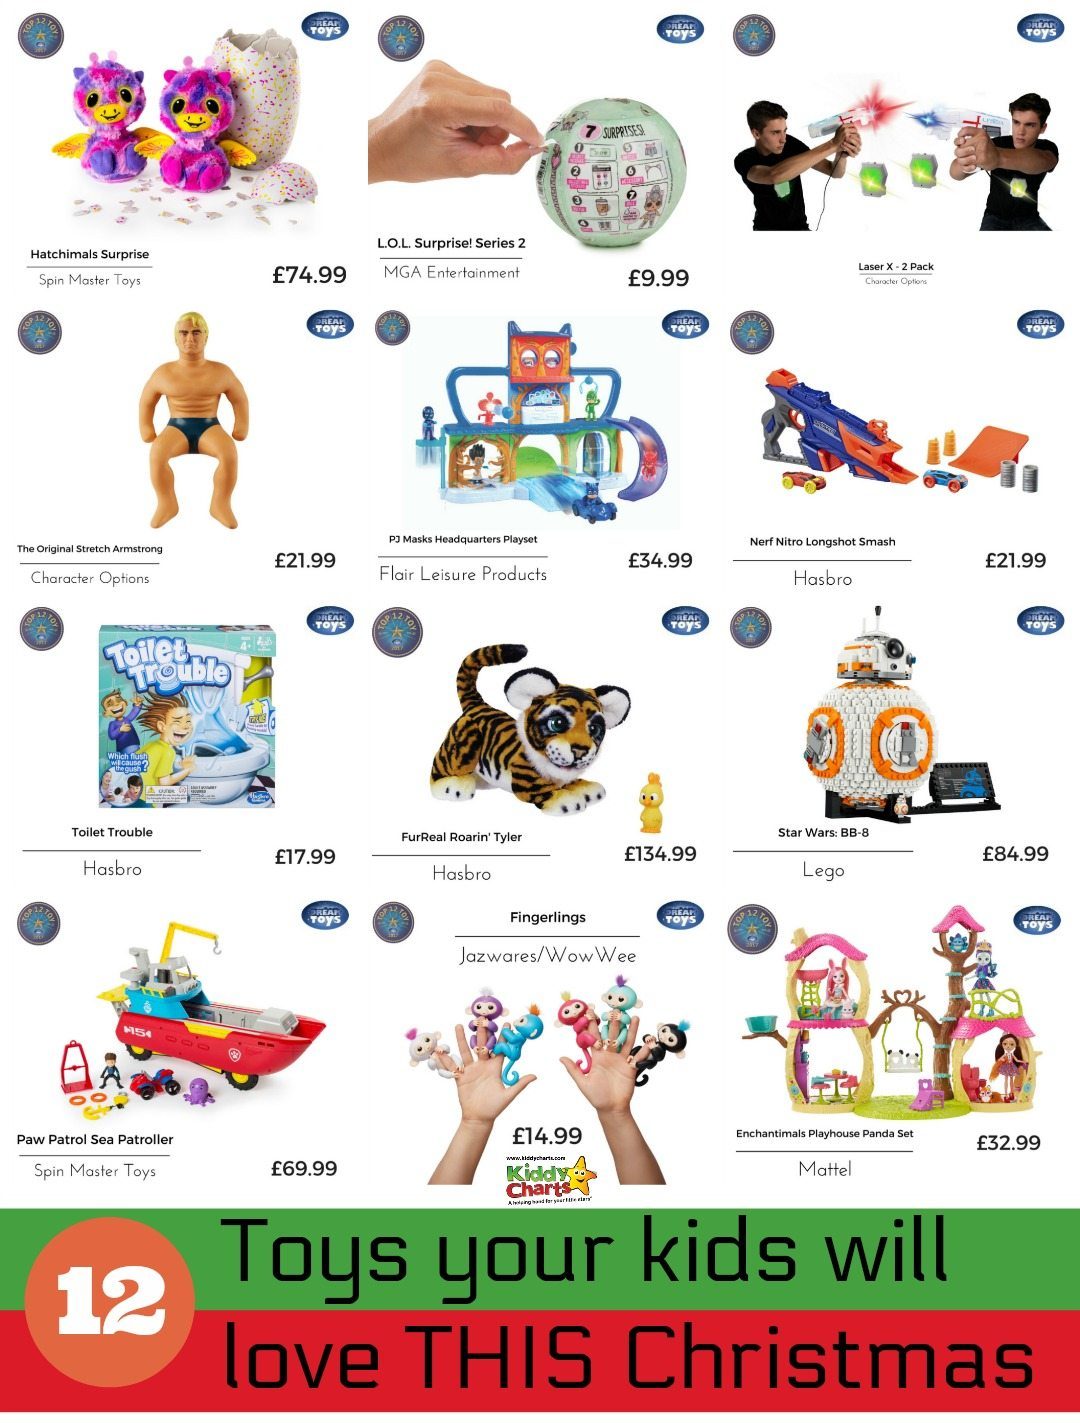 If you are looking for something special for the kids this Christmas then KiddyCharts and Dreamtoys have it for you! 12 of the BEST kids toys to get this Christmas...what could go wrong if one of these ends up under the tree, right?!?! #toys # kids #dreamtoys2017 #christmas #besttoys